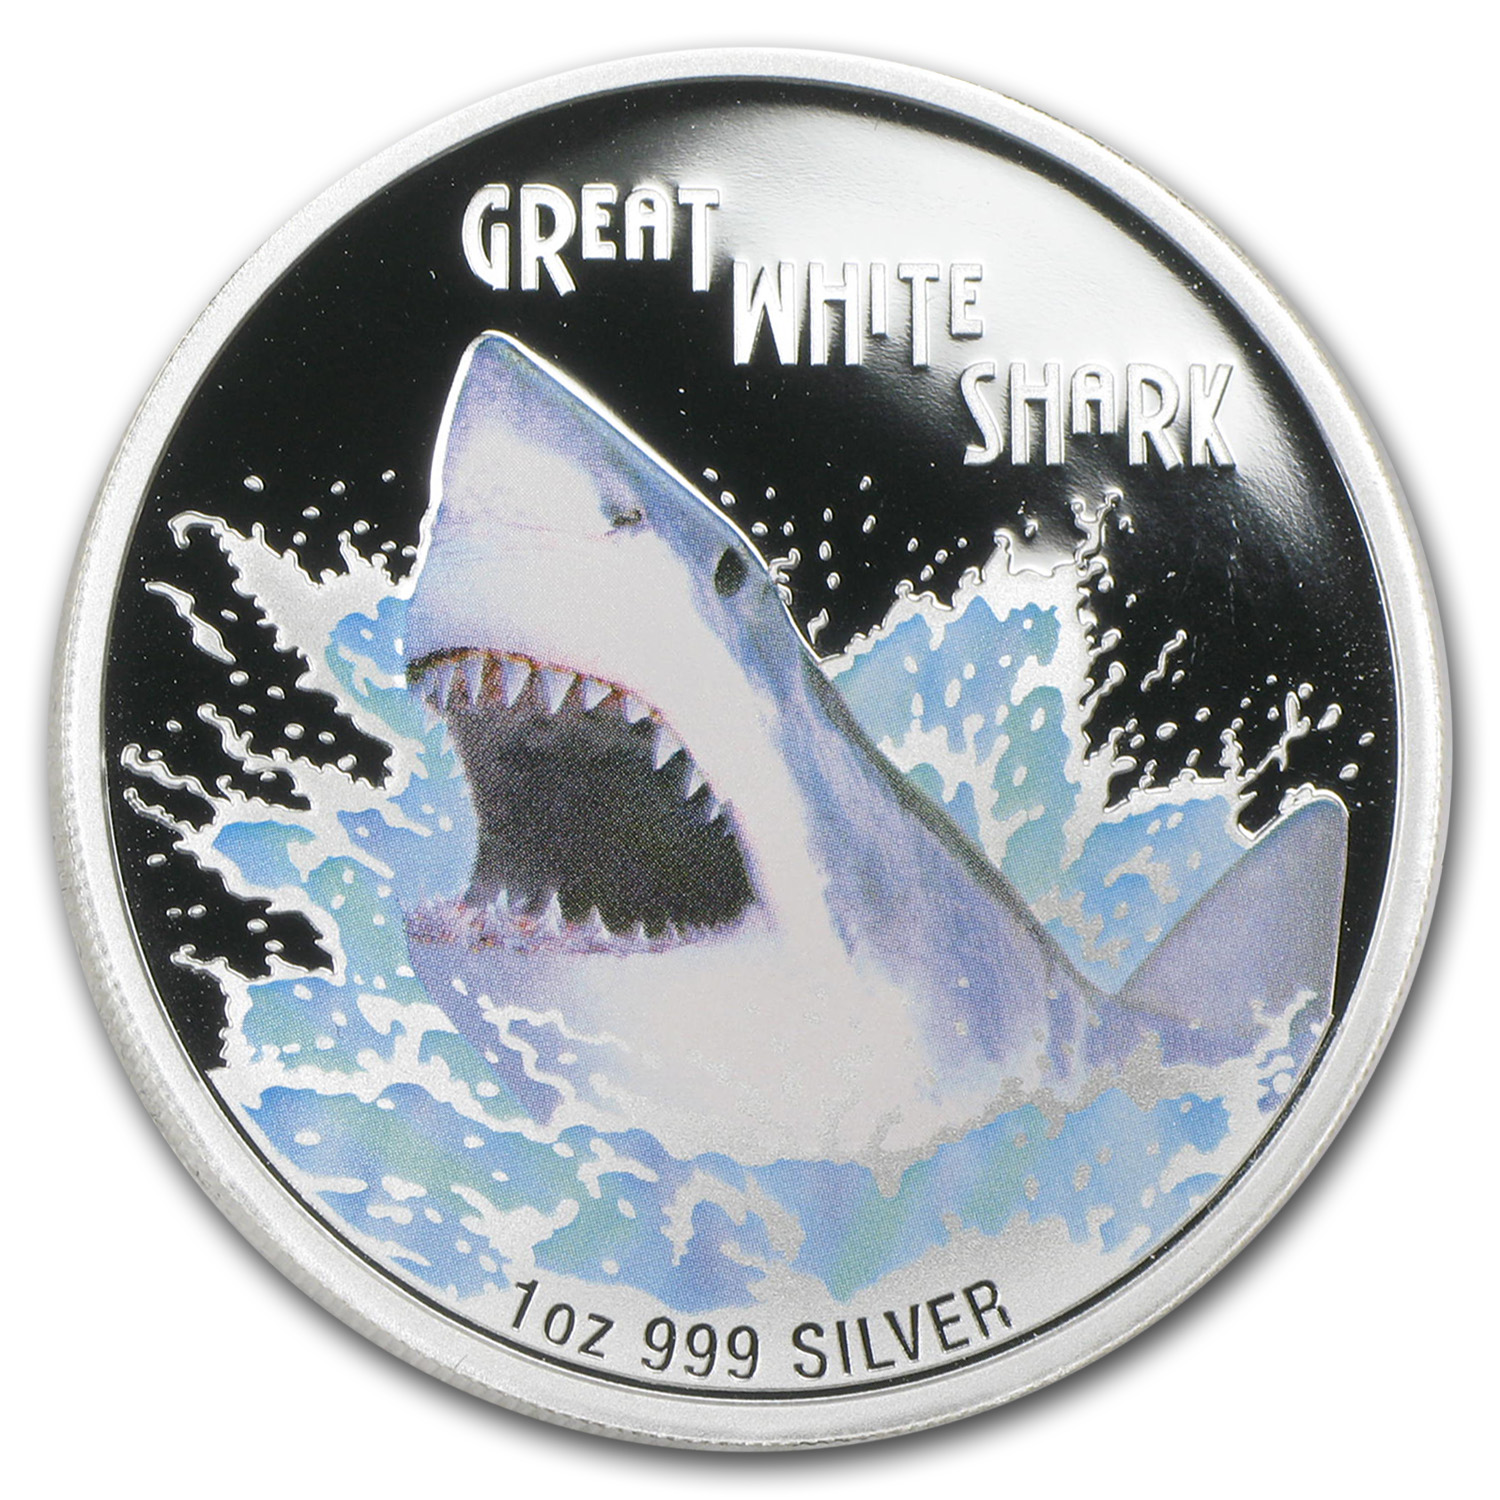 2007 Australia 1 oz Silver Great White Shark Proof